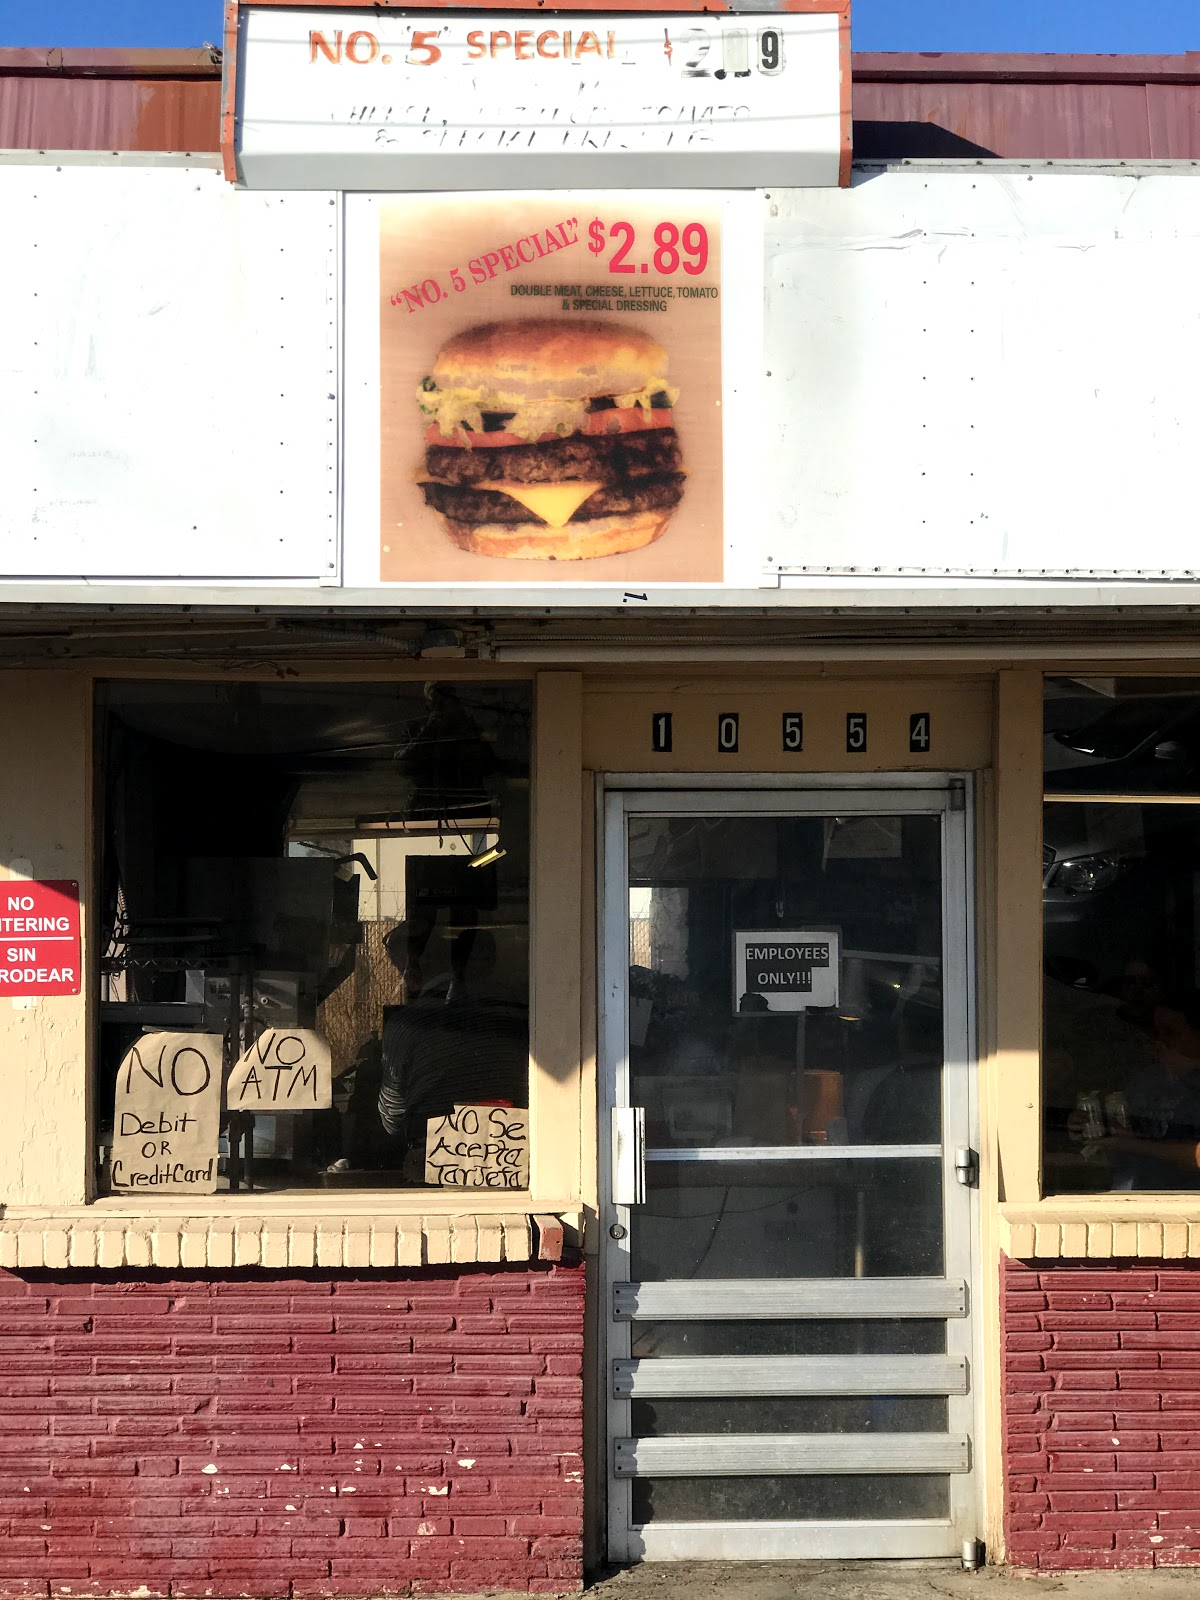 Kellers Drive In Dallas Texas, Homemade Fries, Shakes and Food. City Diaries